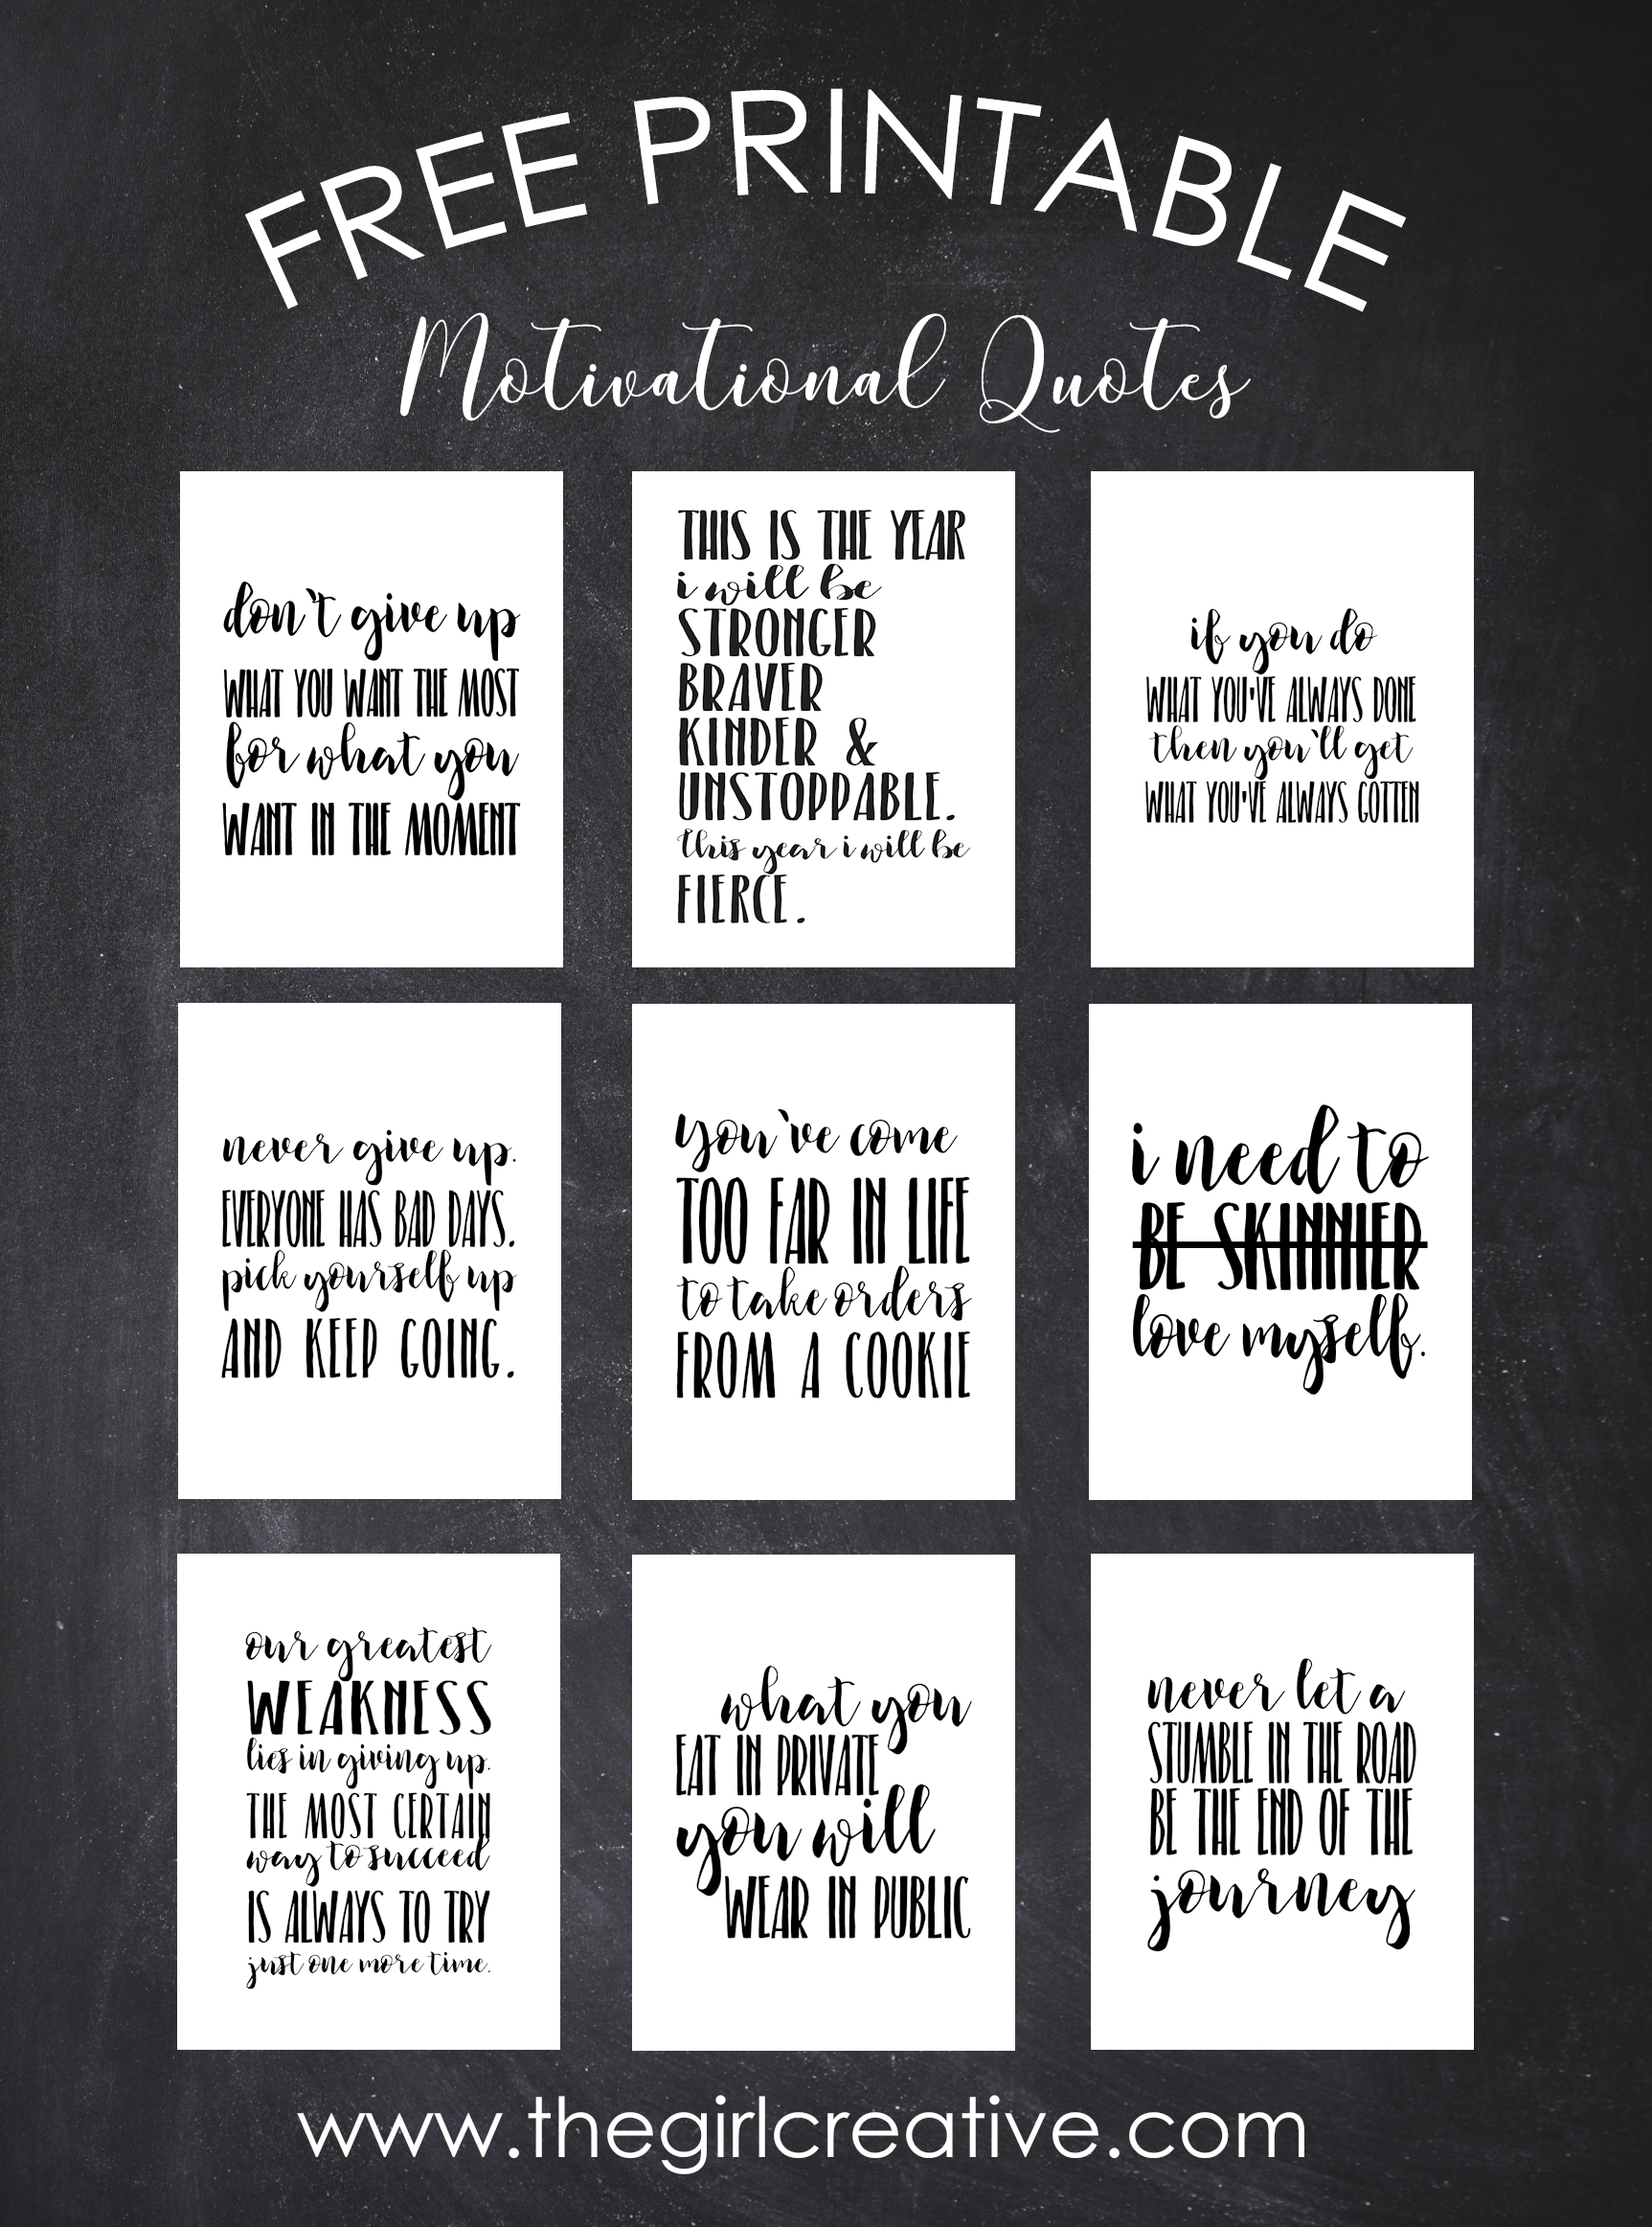 Free Printable Motivational Quotes - The Girl Creative - Free Printable Inspirational Quotes